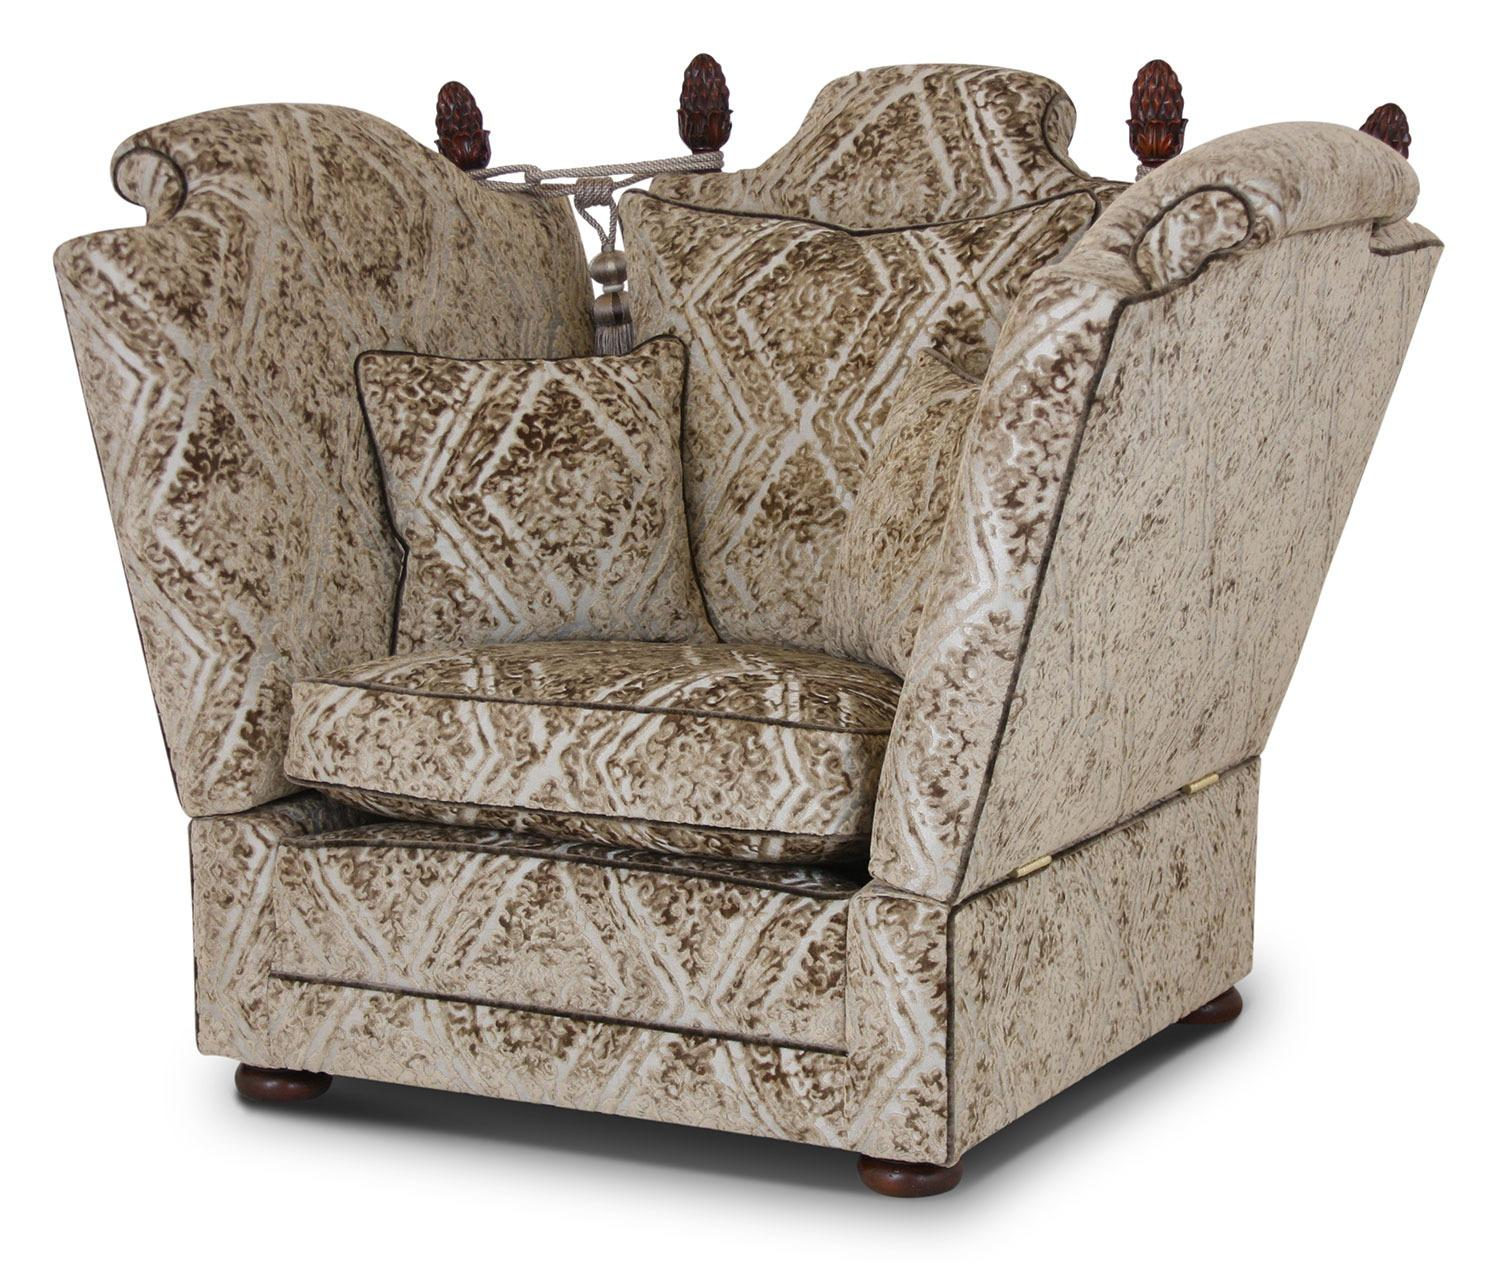 Elizabethan Knole chair in Wemyss Attica